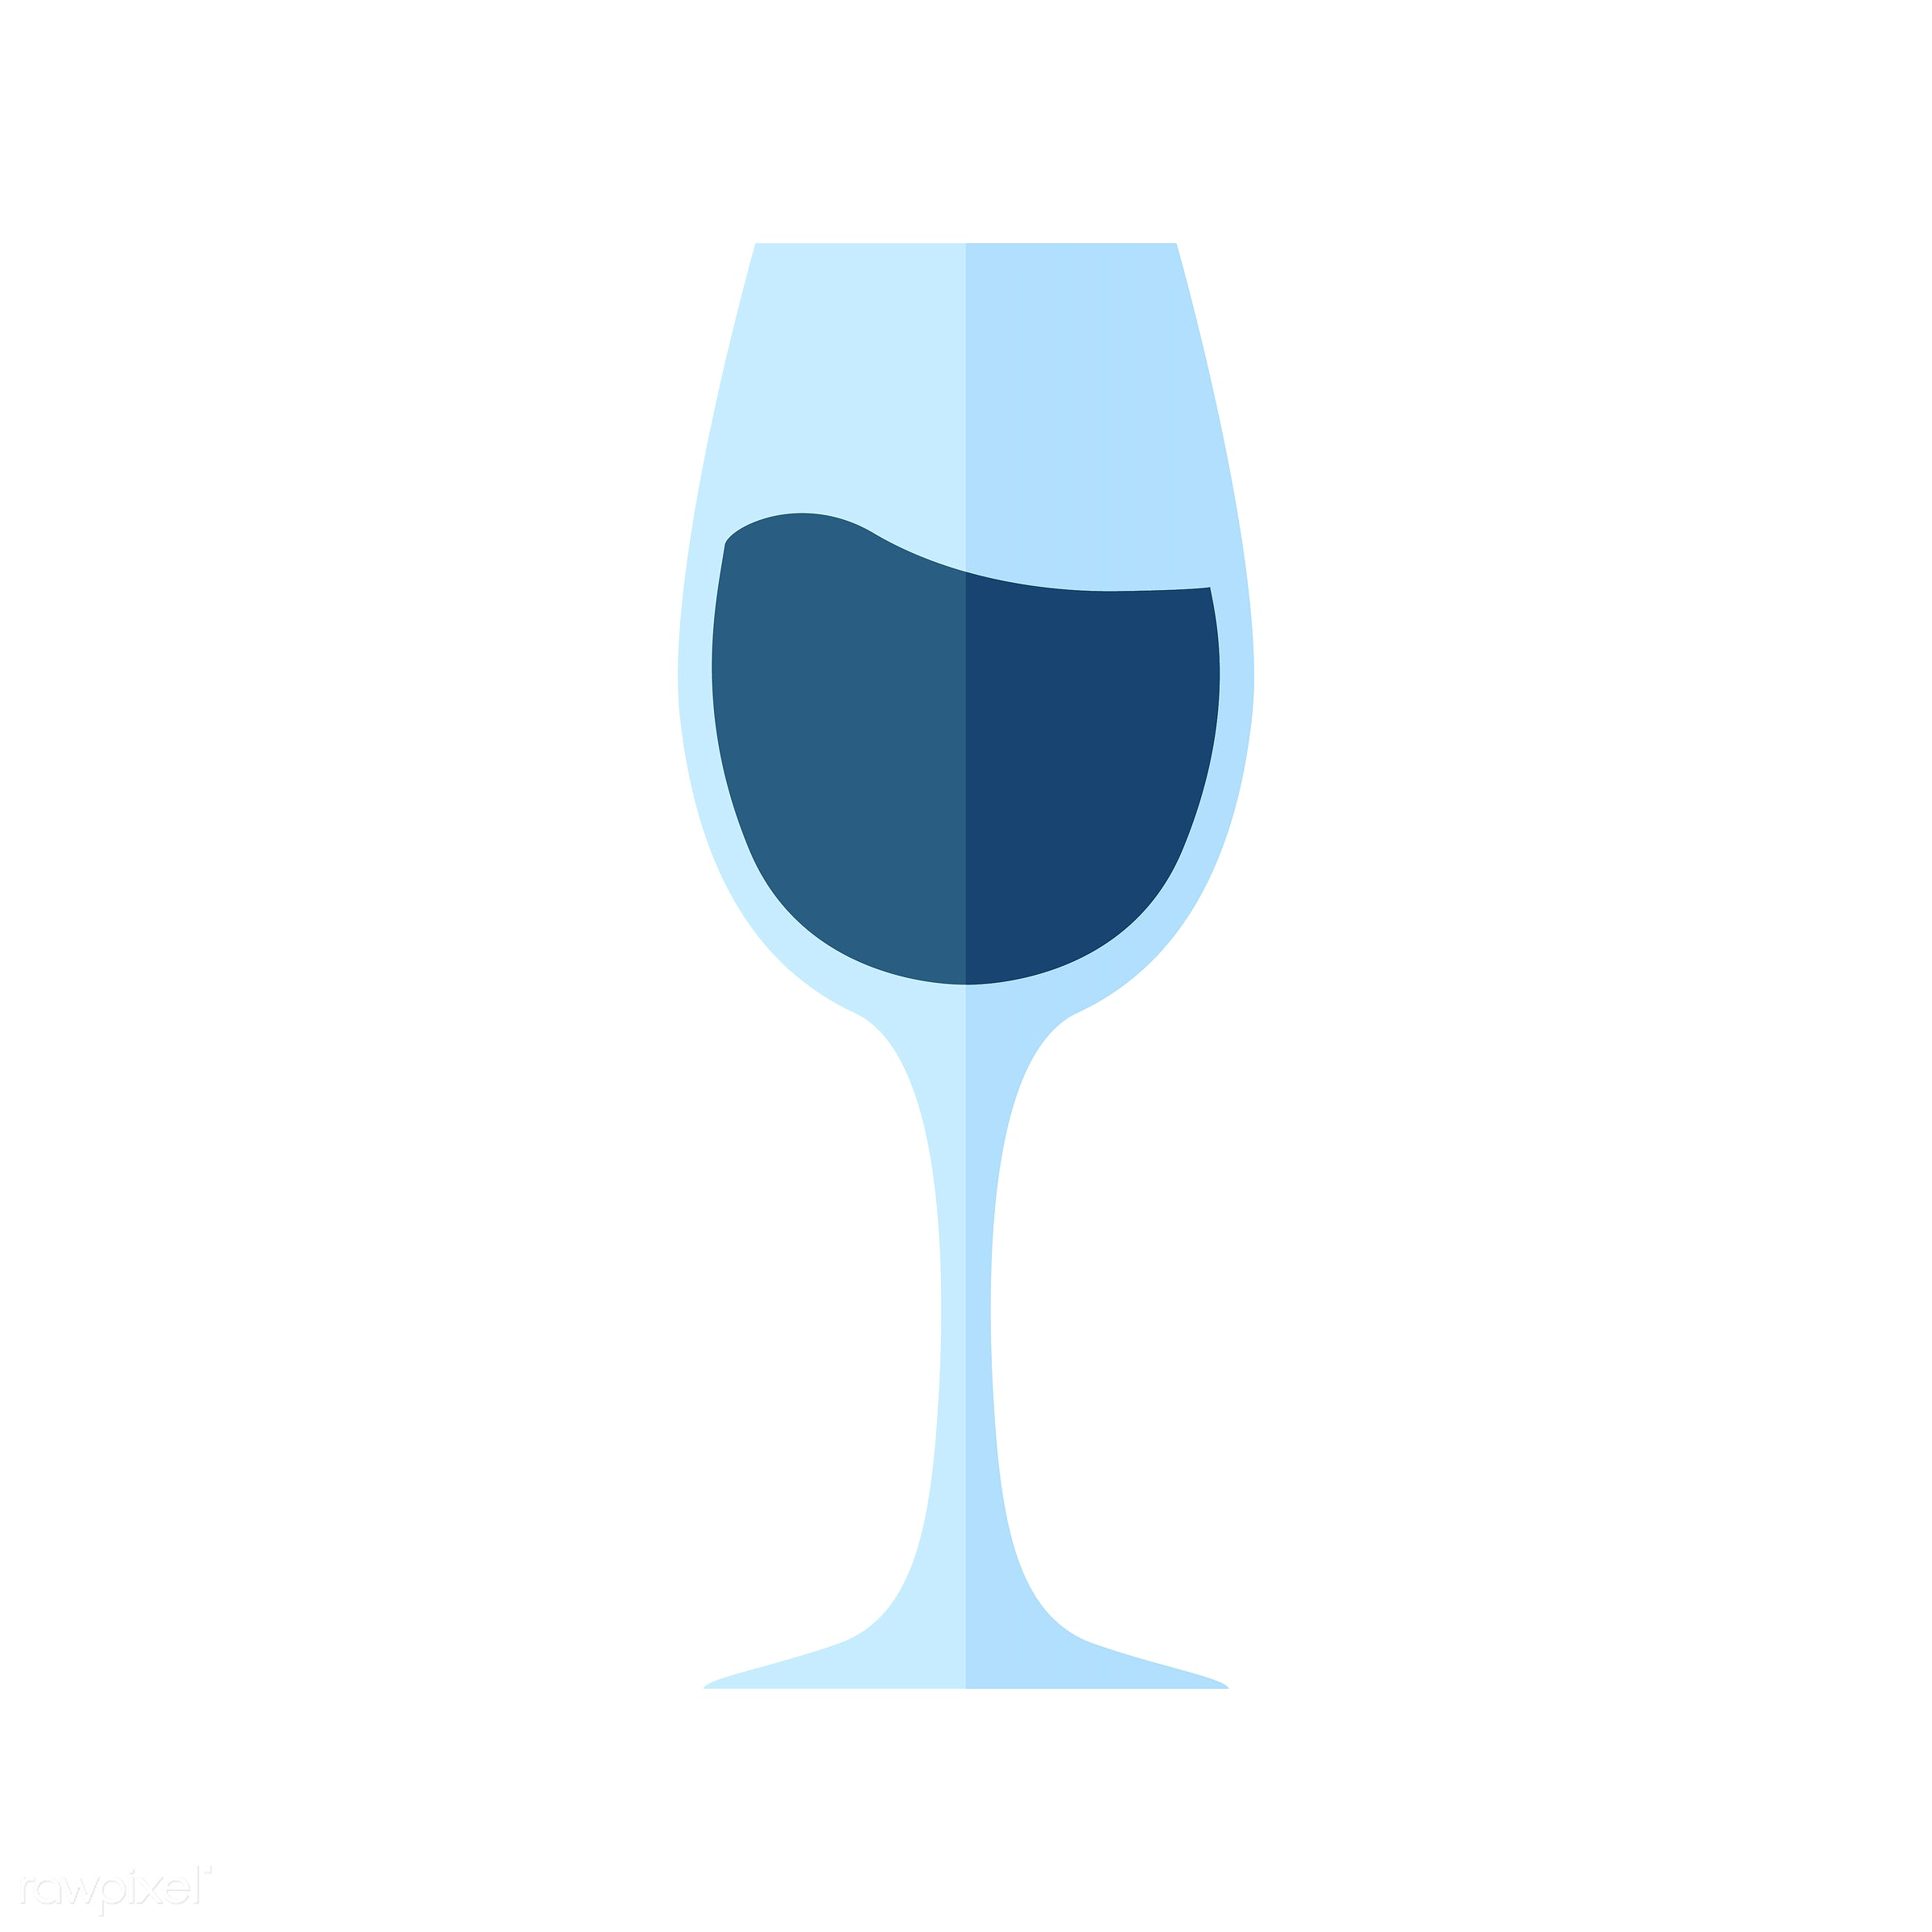 vector, graphic, illustration, icon, symbol, colorful, cute, drink, beverage, water, blue, wine, wine glass, white wine